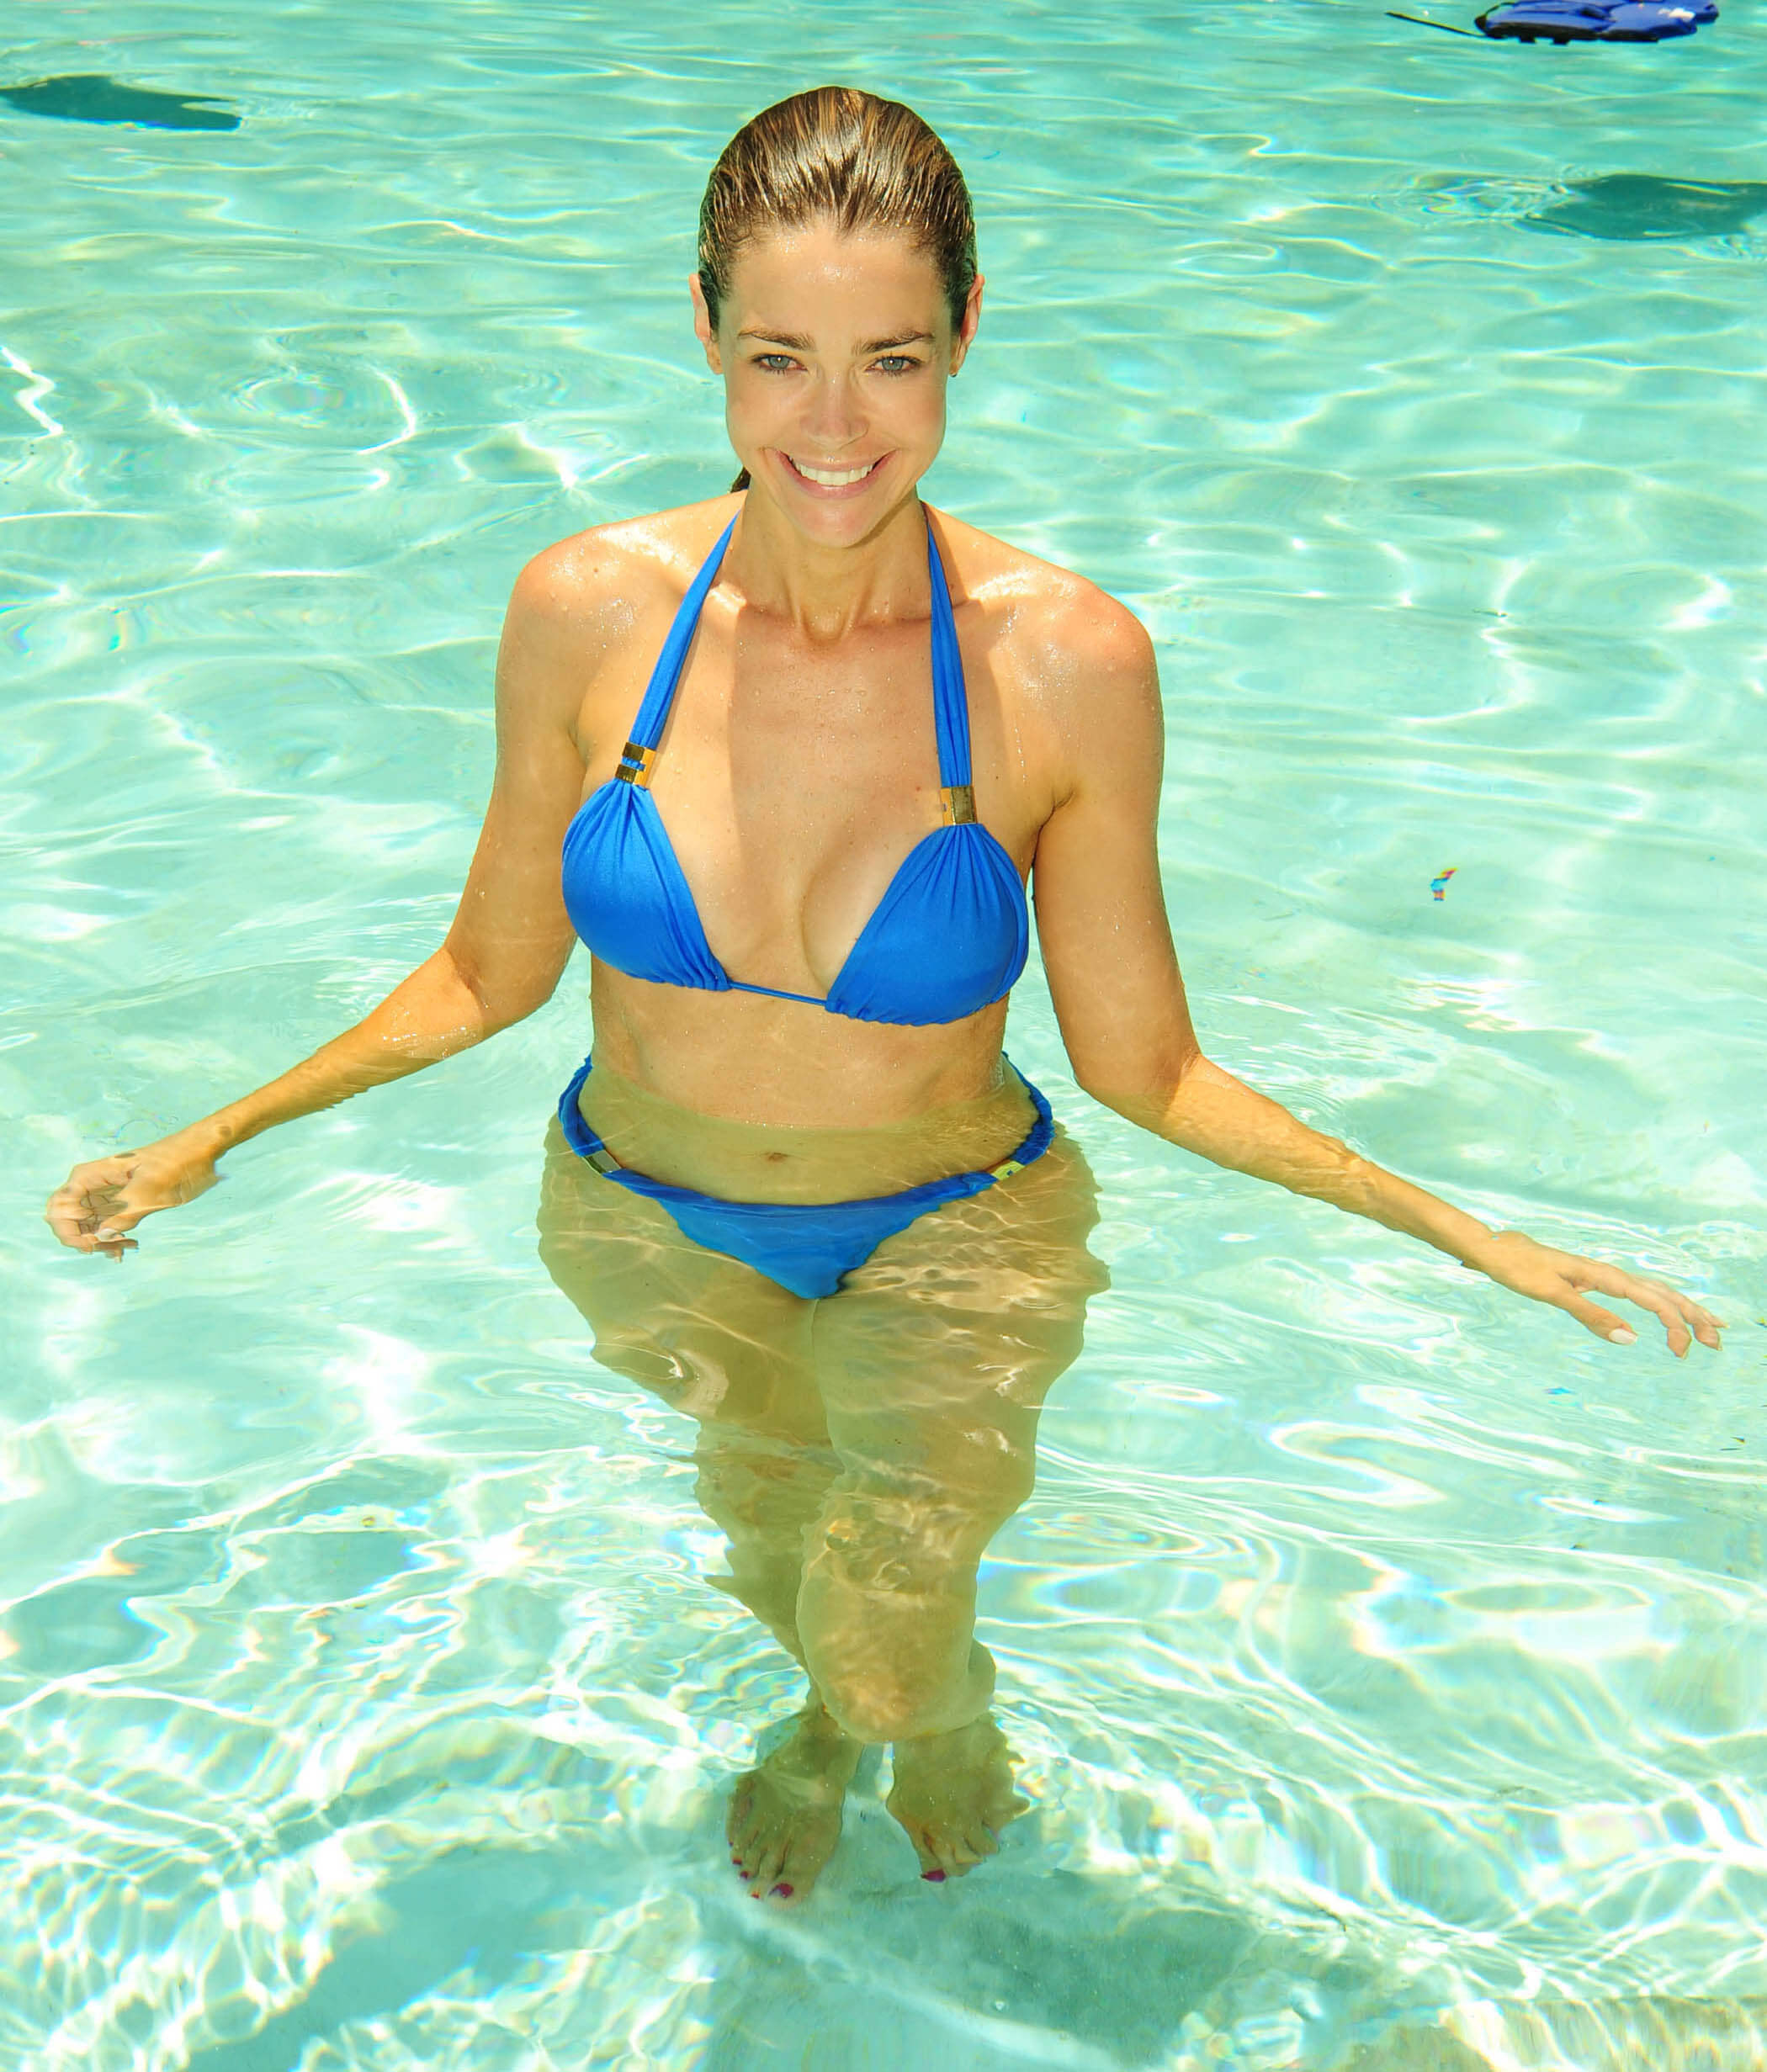 Denise richards Hot in Blue Lingerie